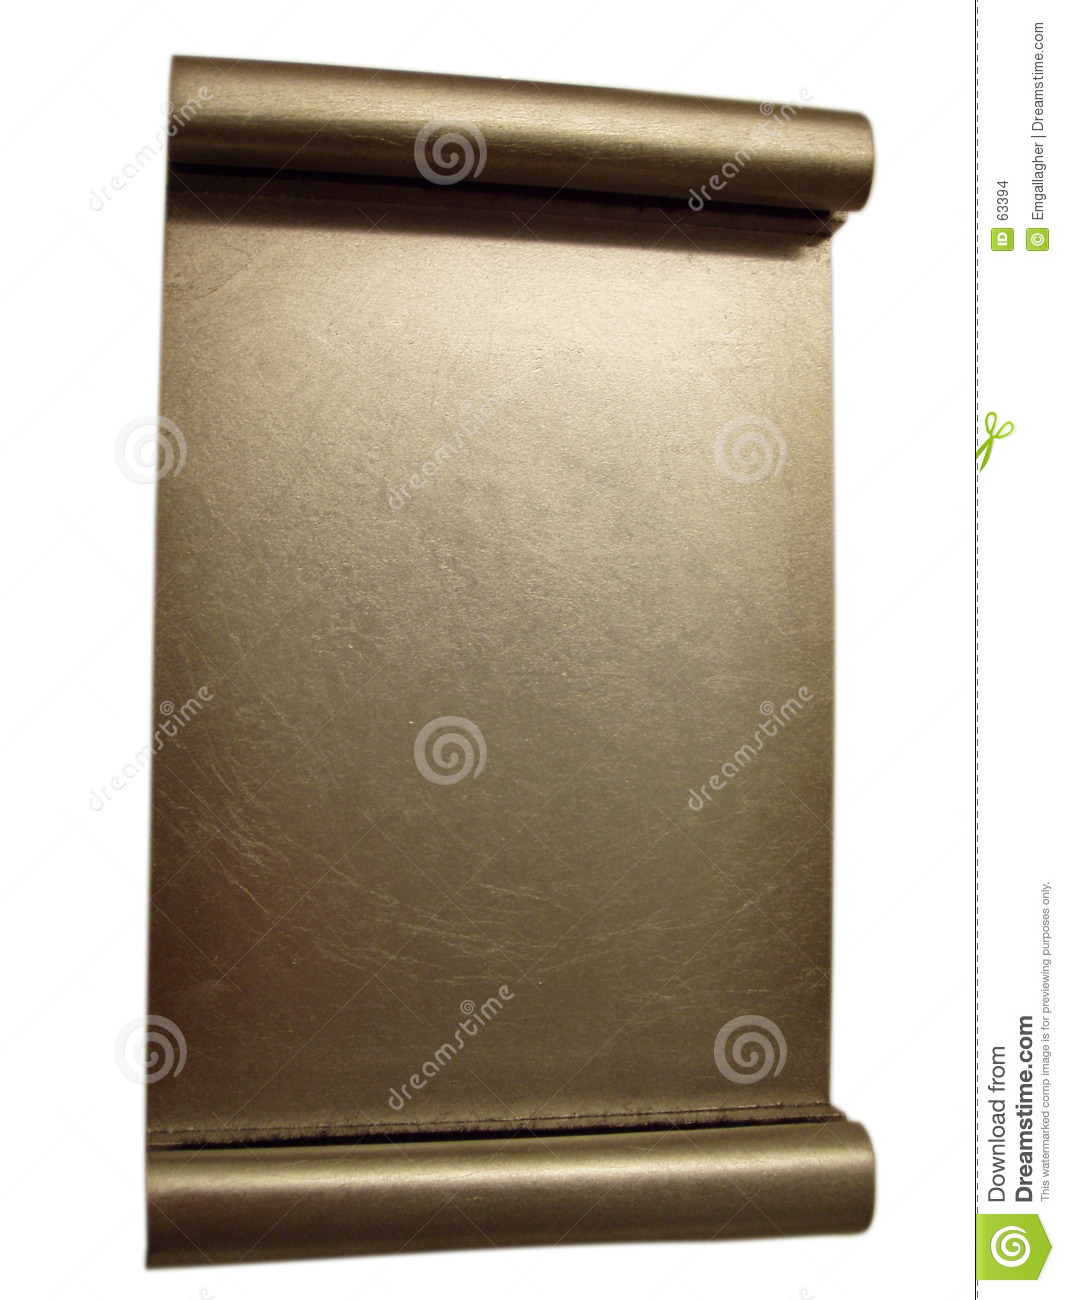 Blank gold award plaque - isolated